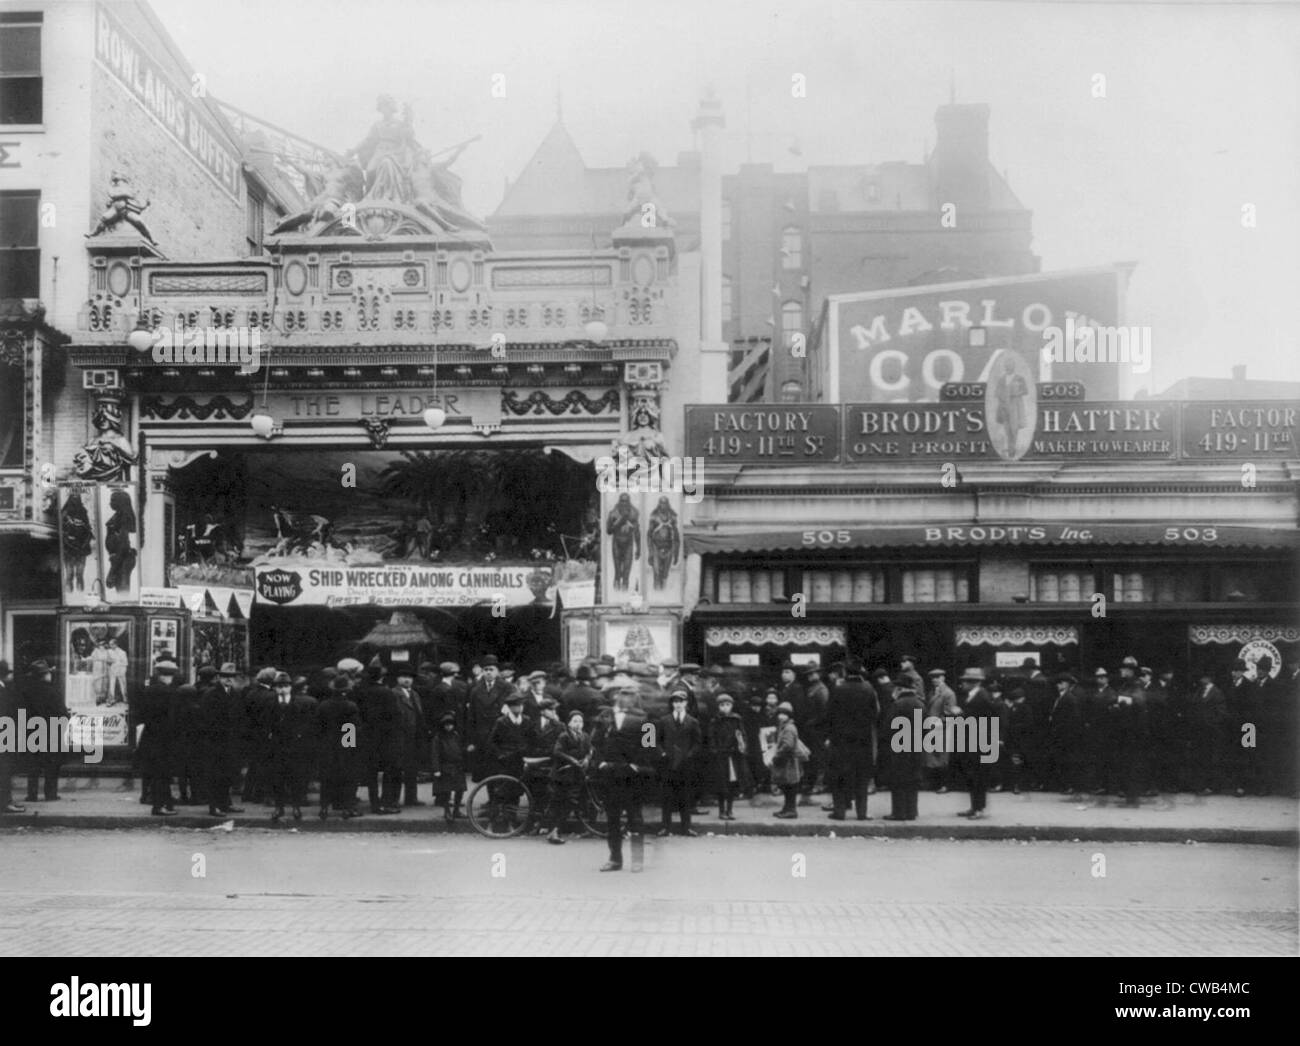 Movie theaters, Lust's Leader Theater, showing SHIPWRECKED AMONG CANNIBALS, Washington DC., photograph 1920. - Stock Image